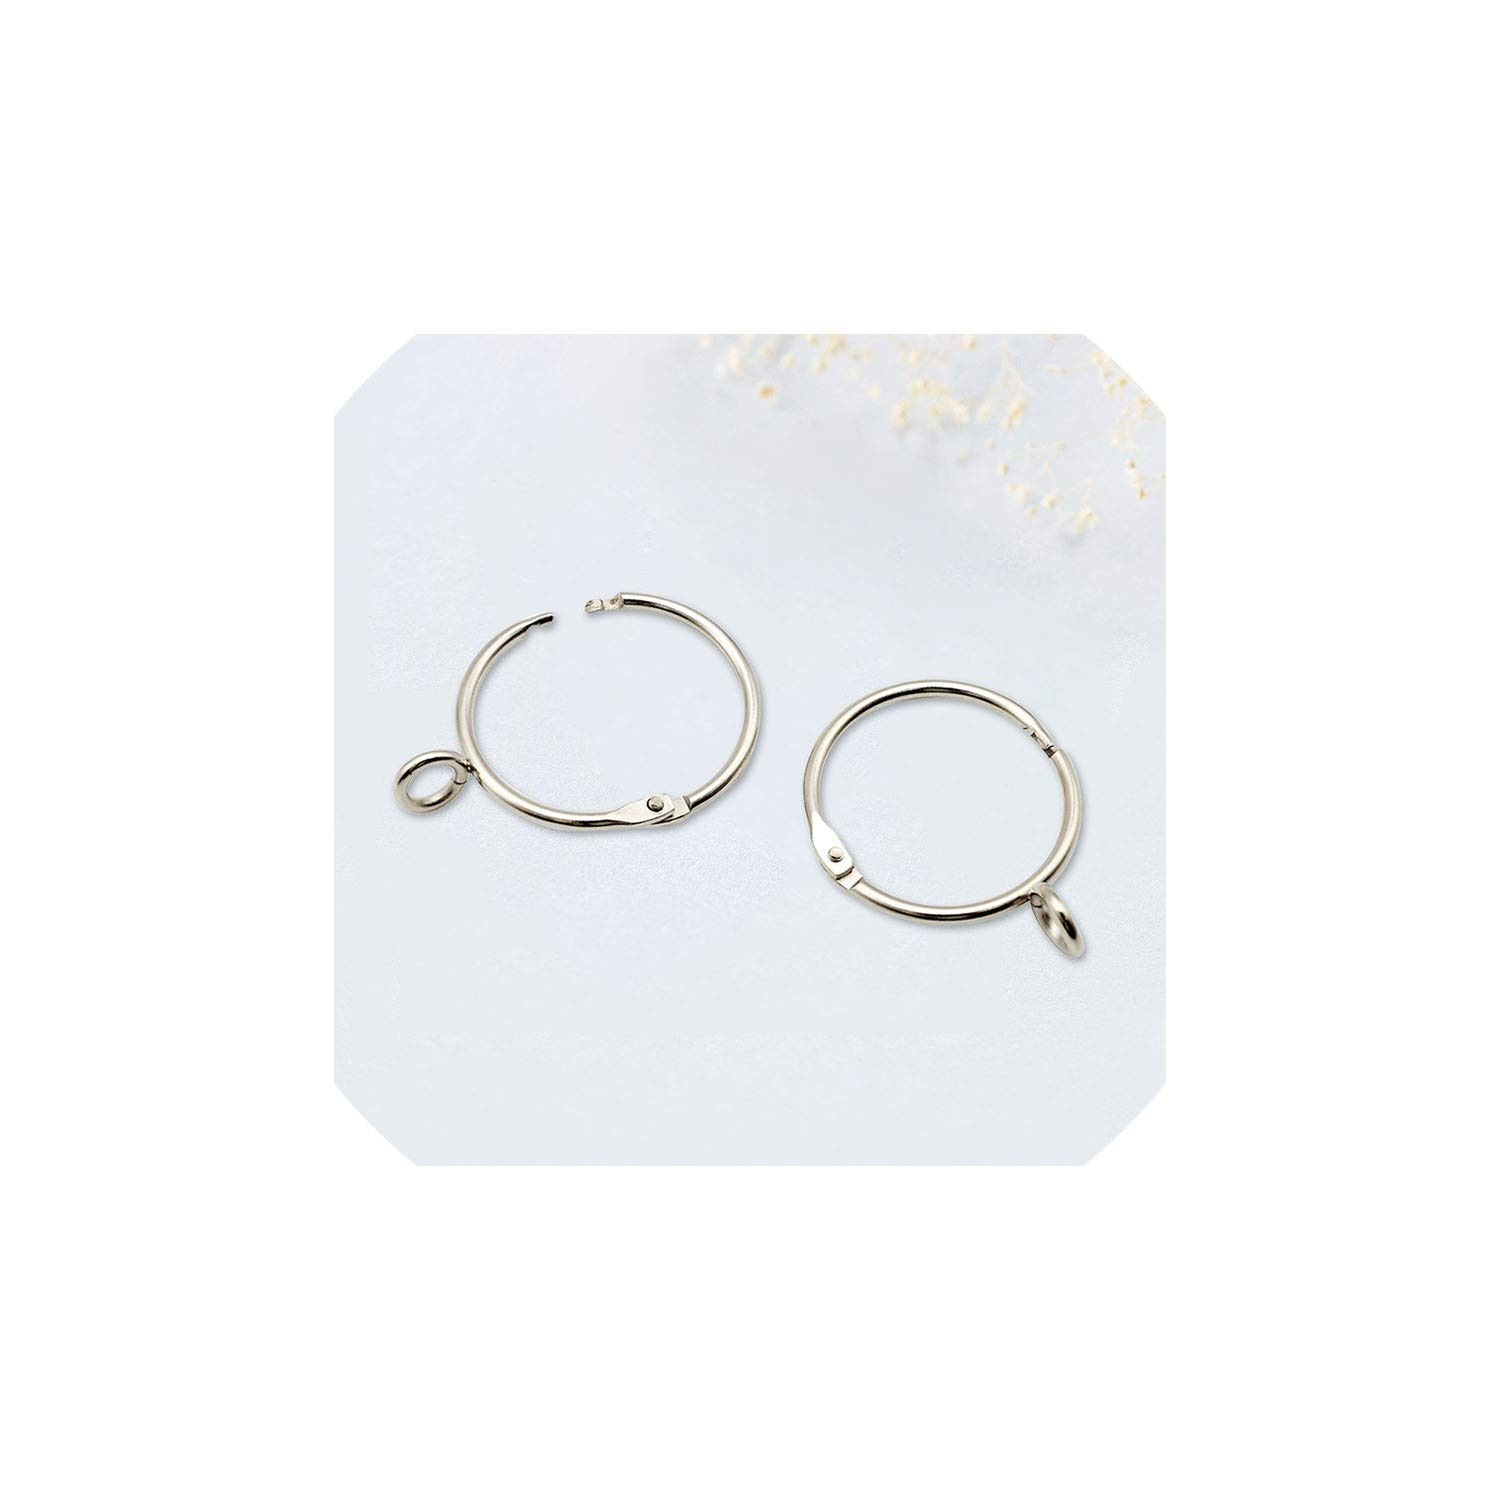 YOUNG-STYLE Metal Silver Color Open Curtain Ring Hooks Clips Circle for Opening Ring Curtain,Diameter 50 mm,80 Pieces